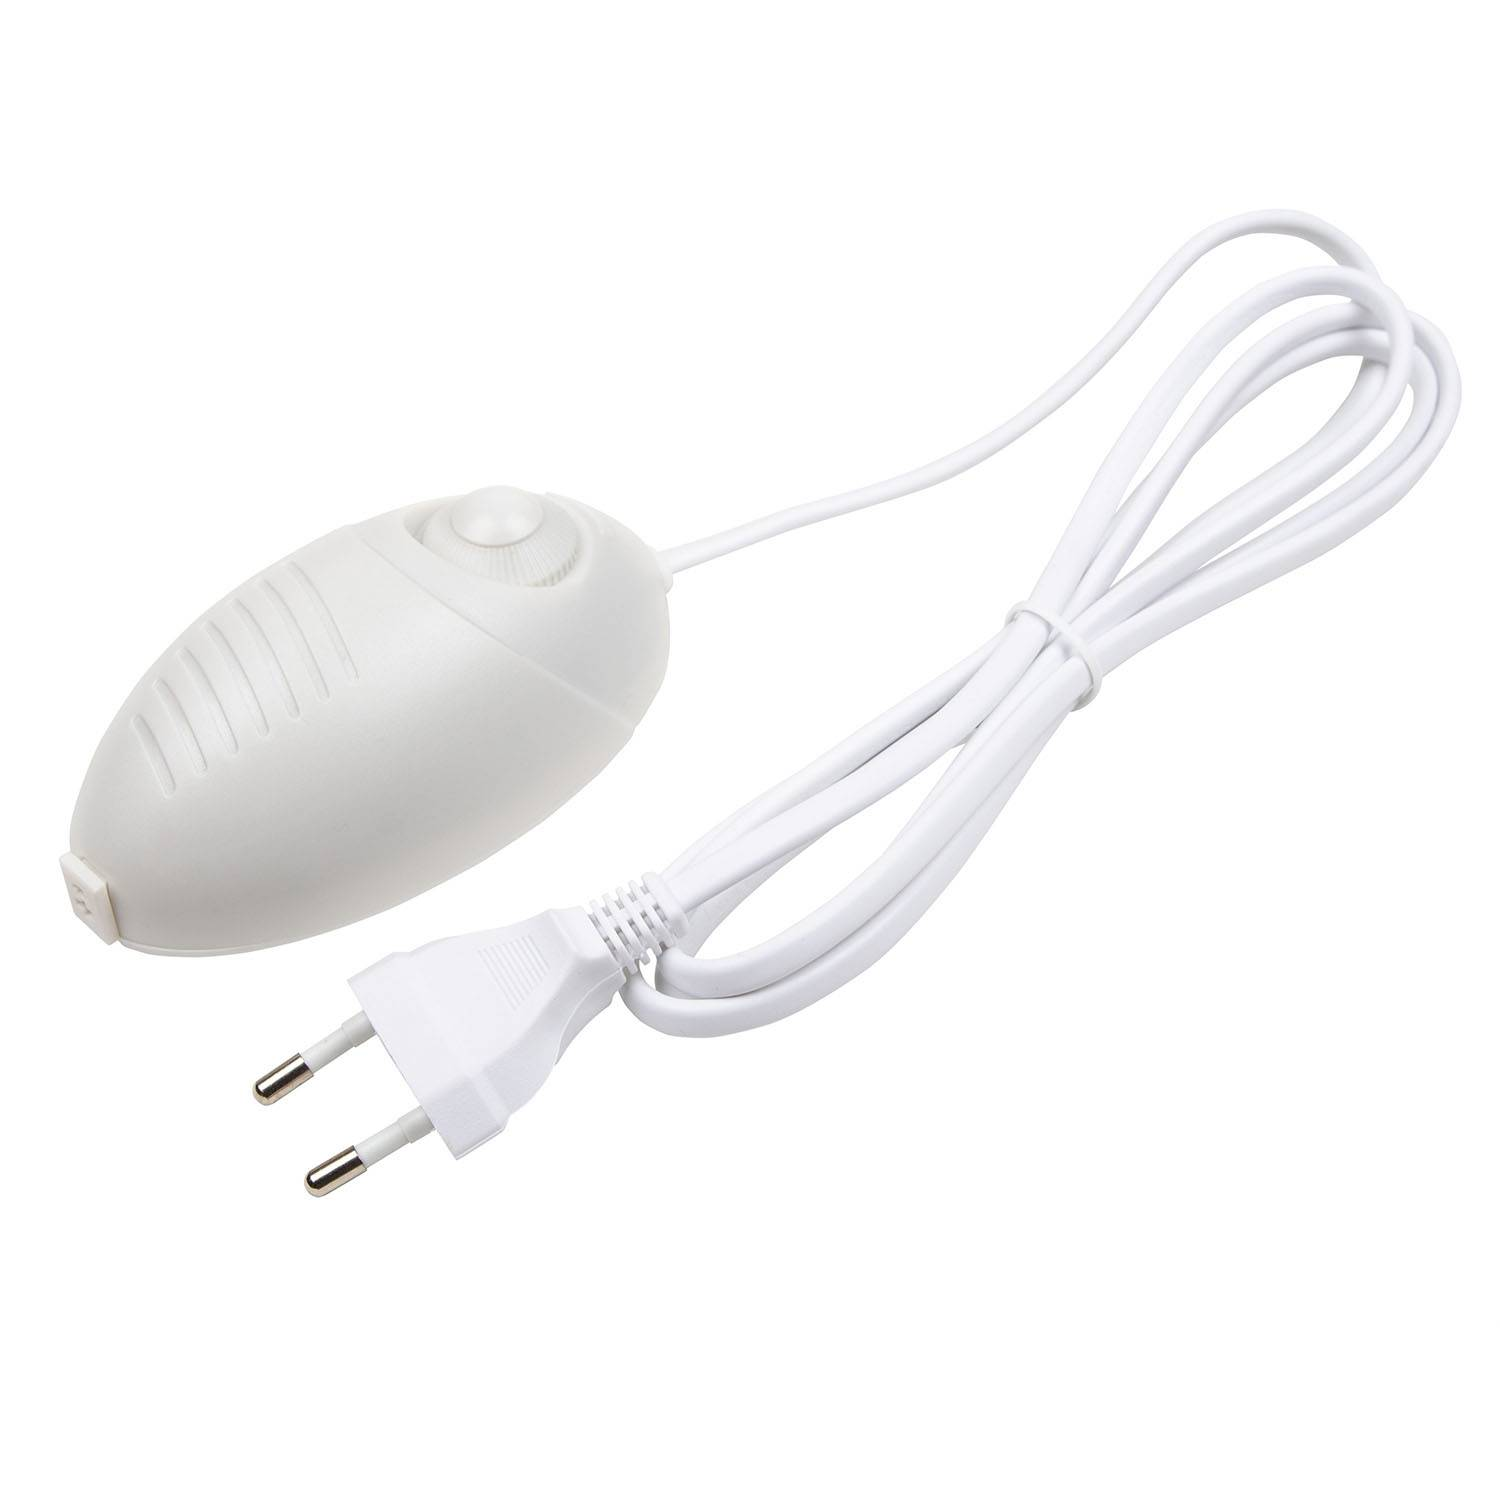 Smak Design-Dimmer/Transformer 10-60W Ink Cord Your-Plug in, White